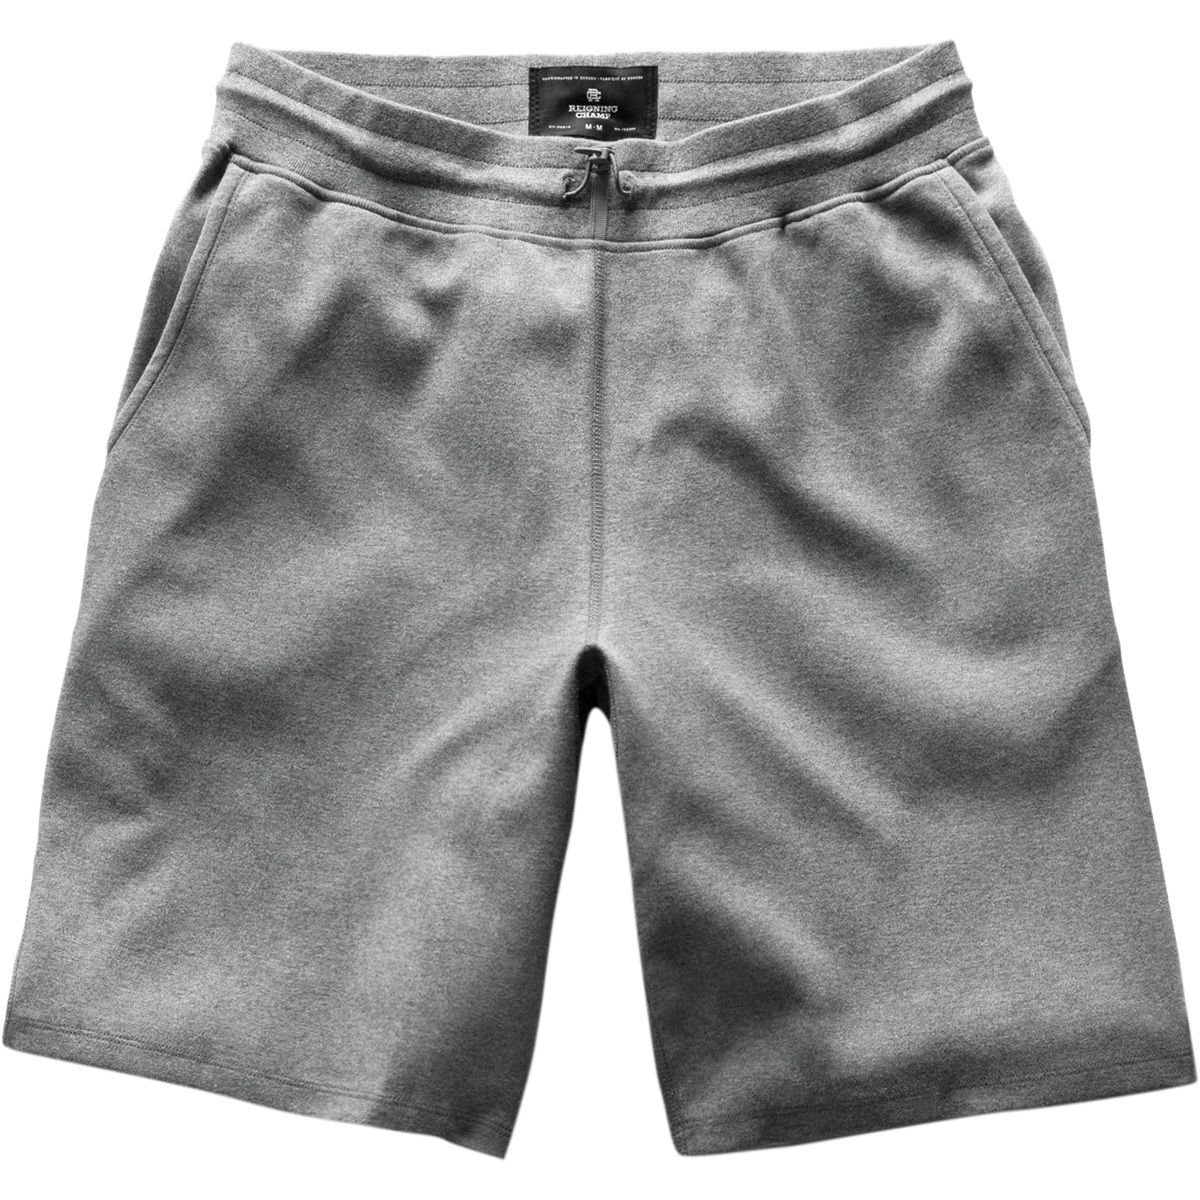 Reigning Champ Bonded Interlock Short - Men's Moraine, L